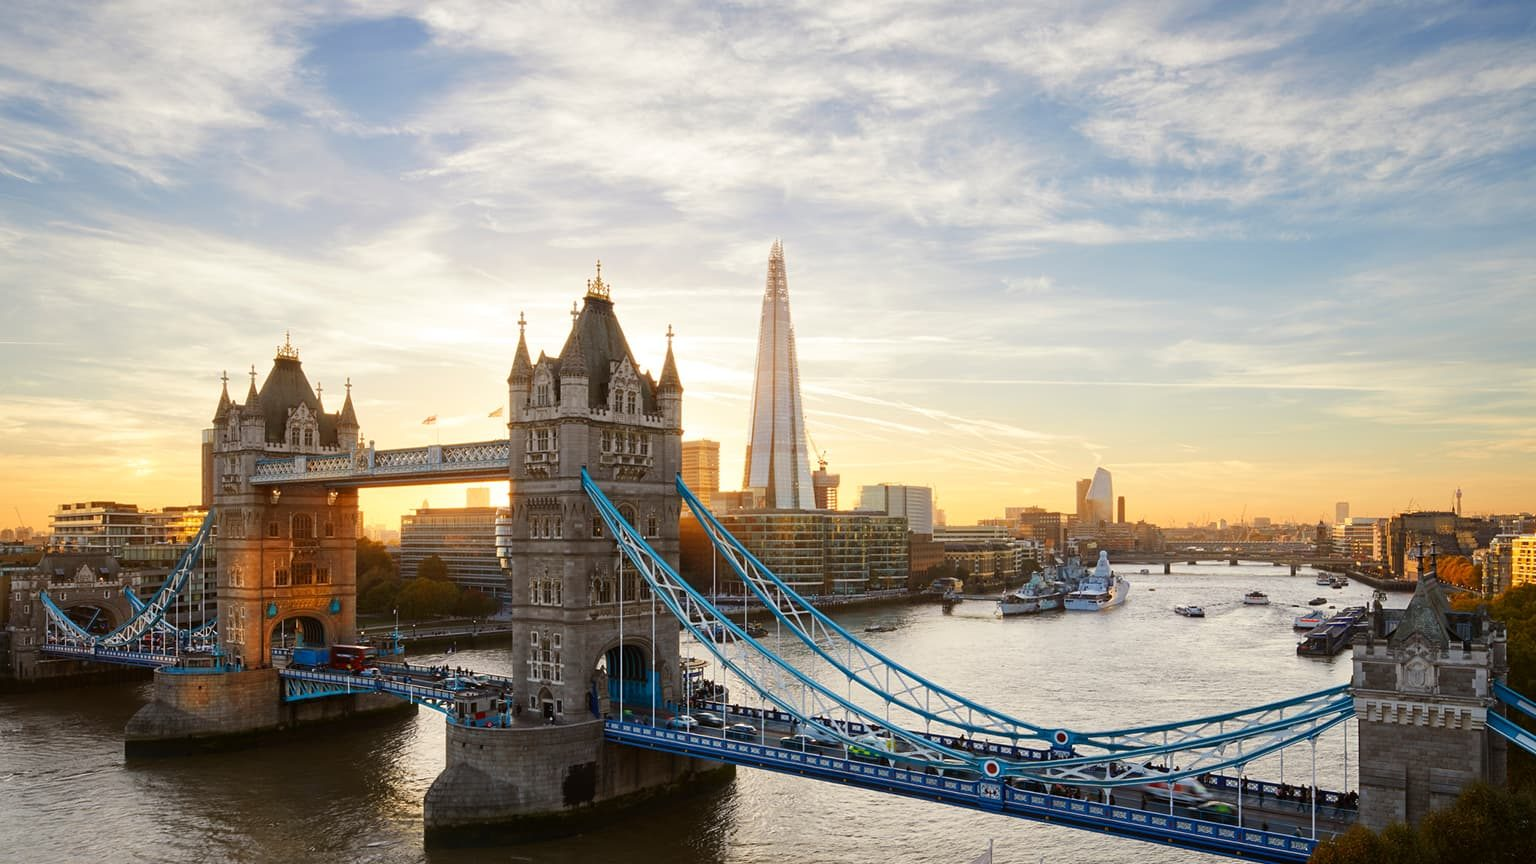 Tower Bridge and The Shard at sunset, London, England